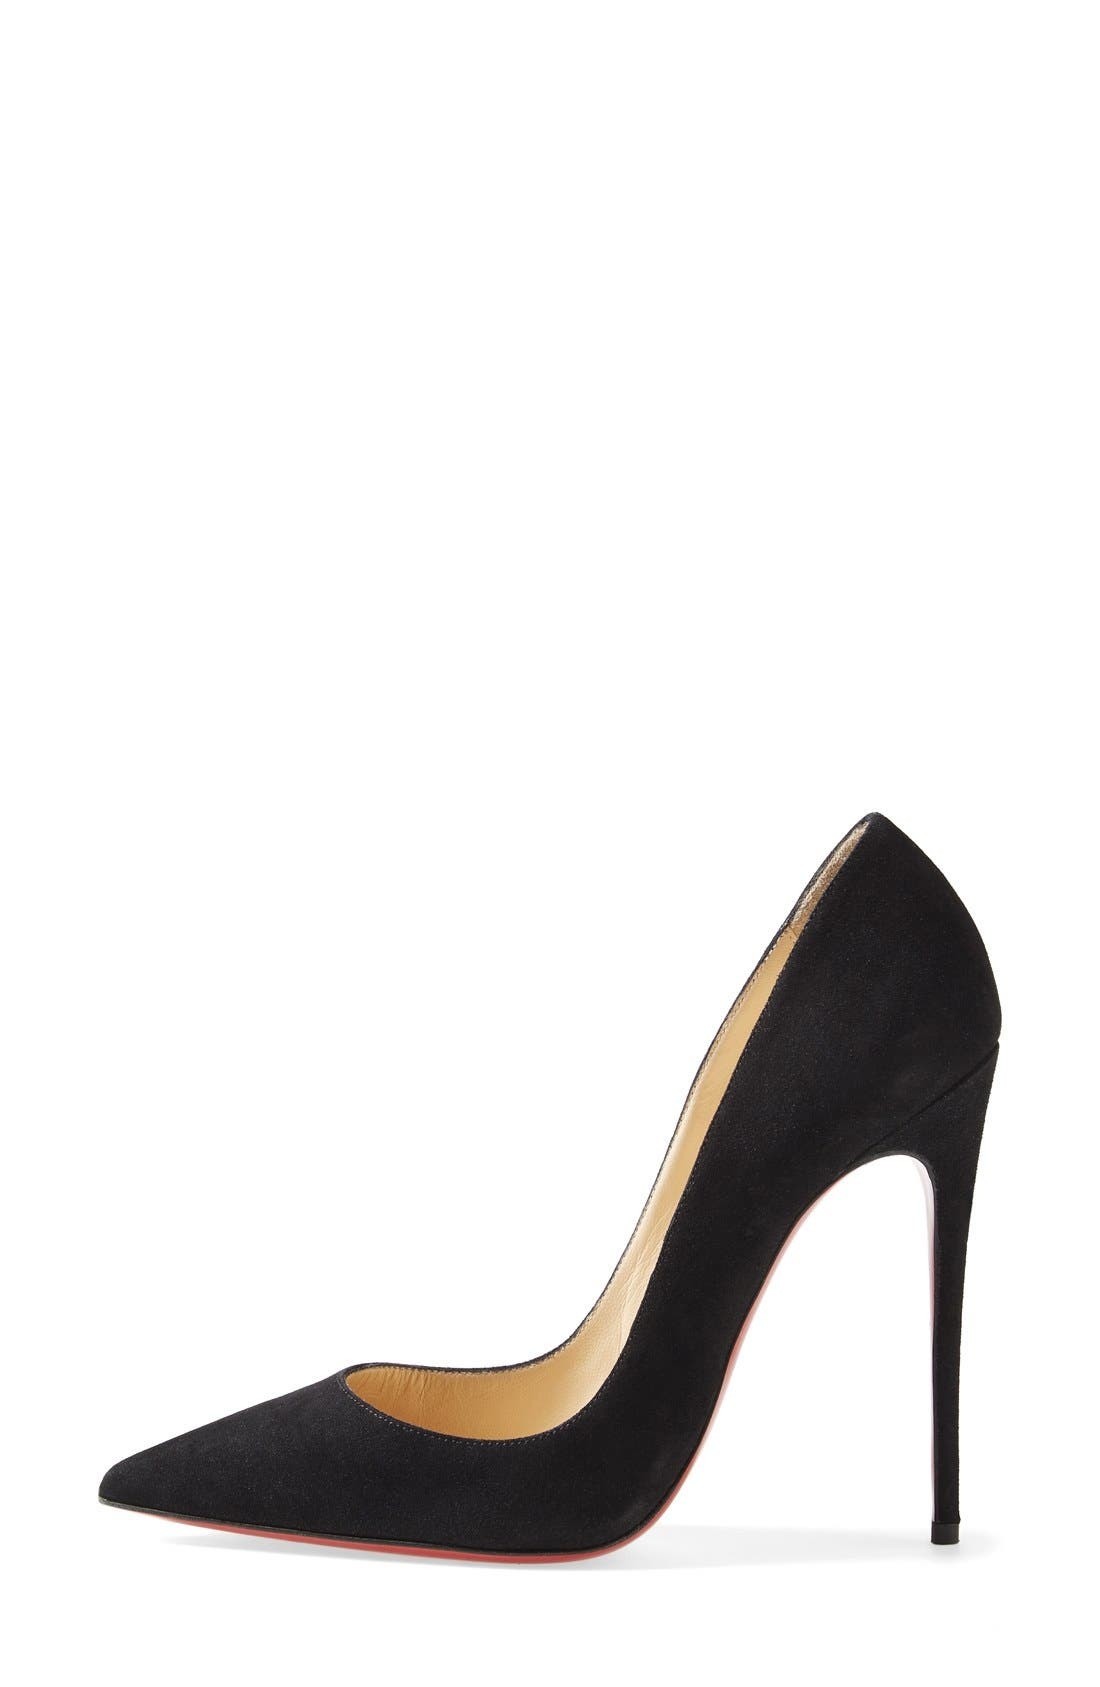 CHRISTIAN LOUBOUTIN,                             'So Kate' Pointy Toe Suede Pump,                             Alternate thumbnail 4, color,                             001